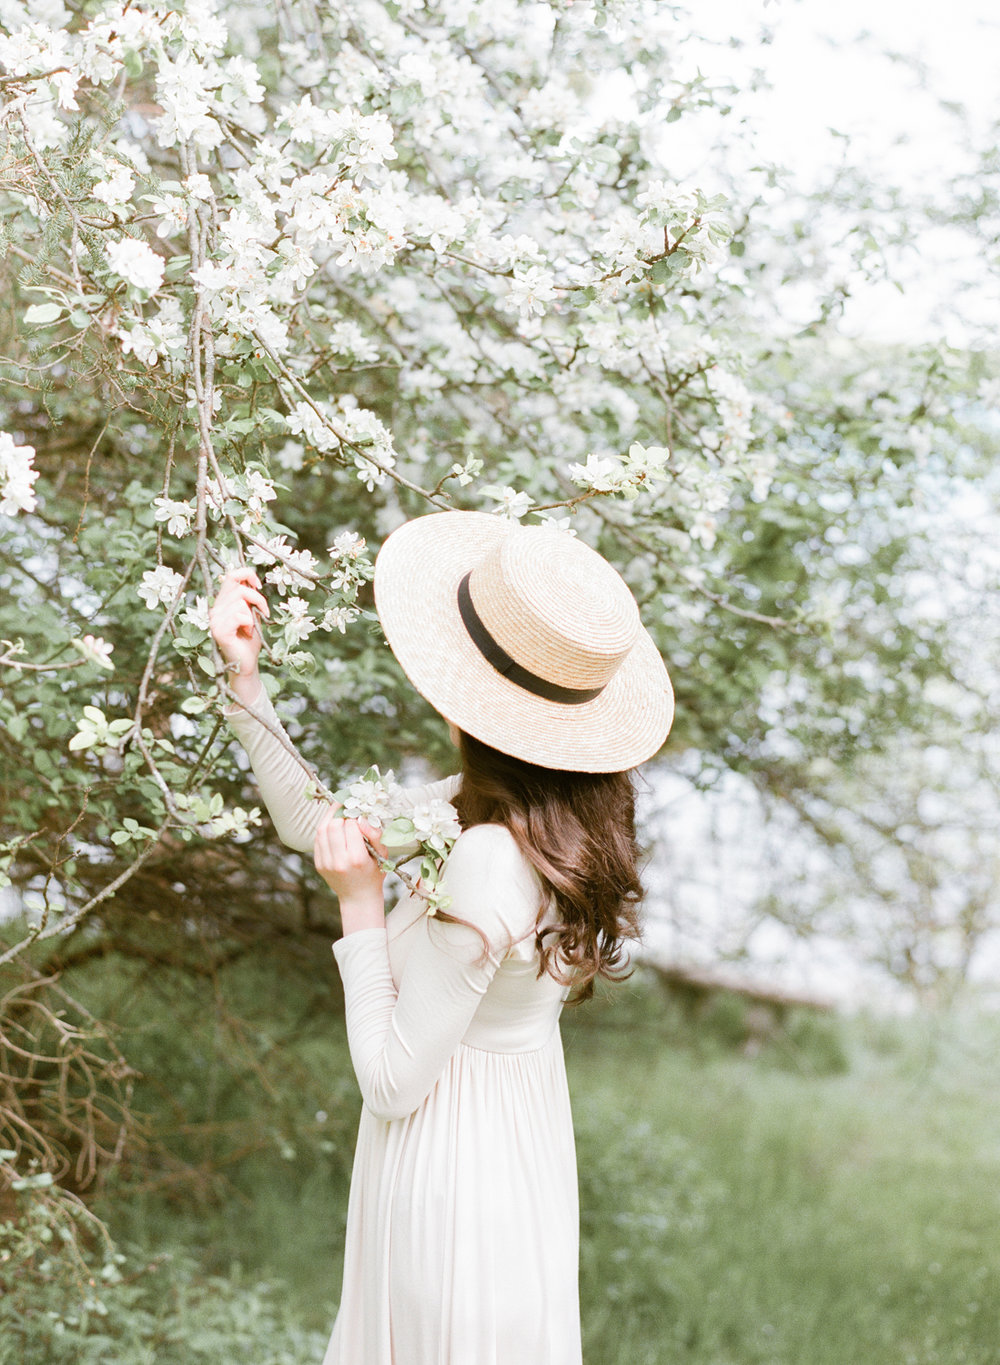 Jacqueline Anne Photography Captured on Film, A Woman in a Cream Dress, admiring the blossom tree